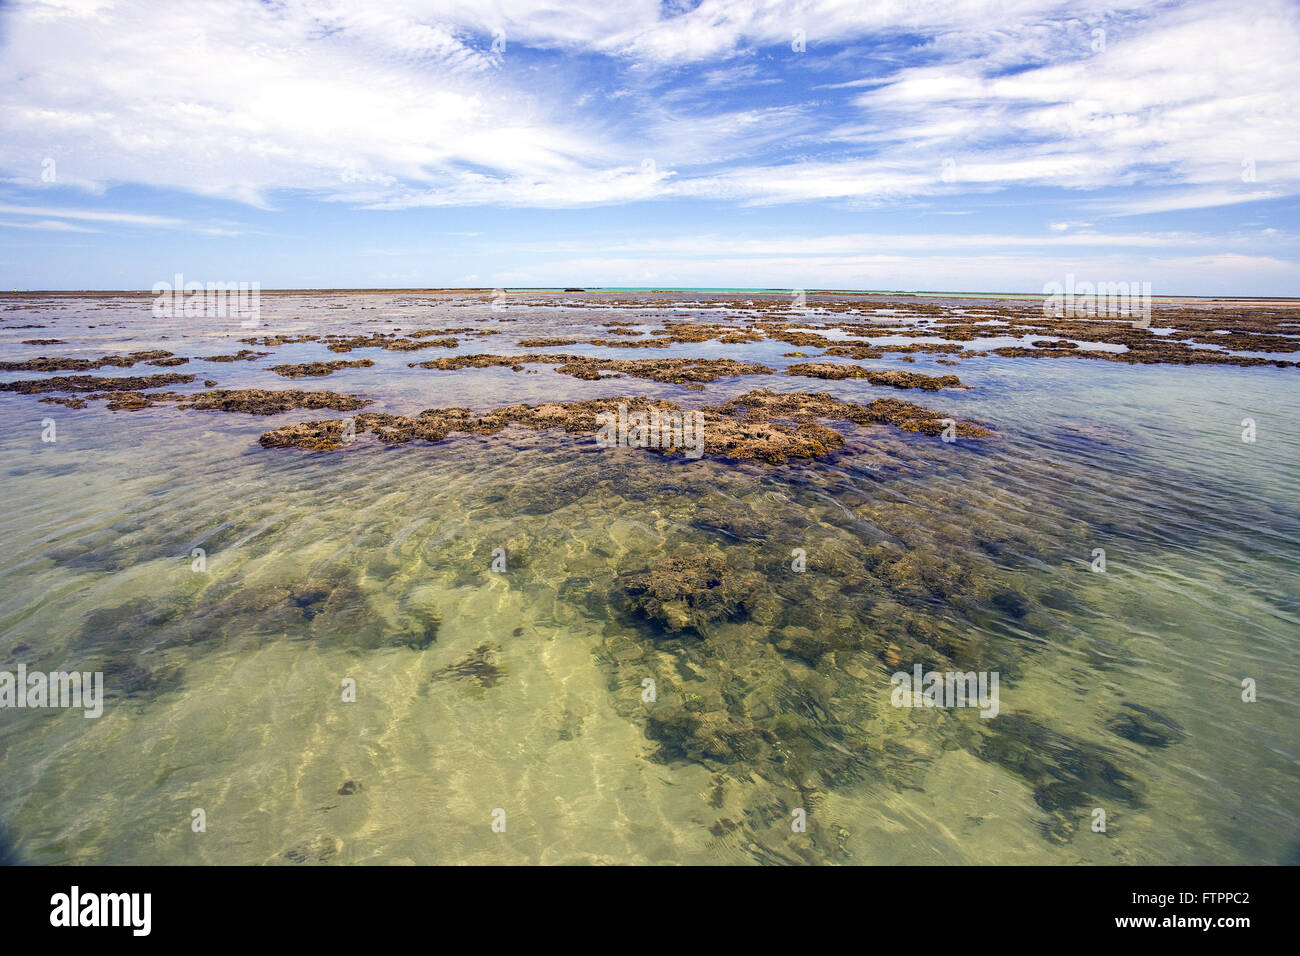 Natural pools formed on the reefs during low tide - Stock Image